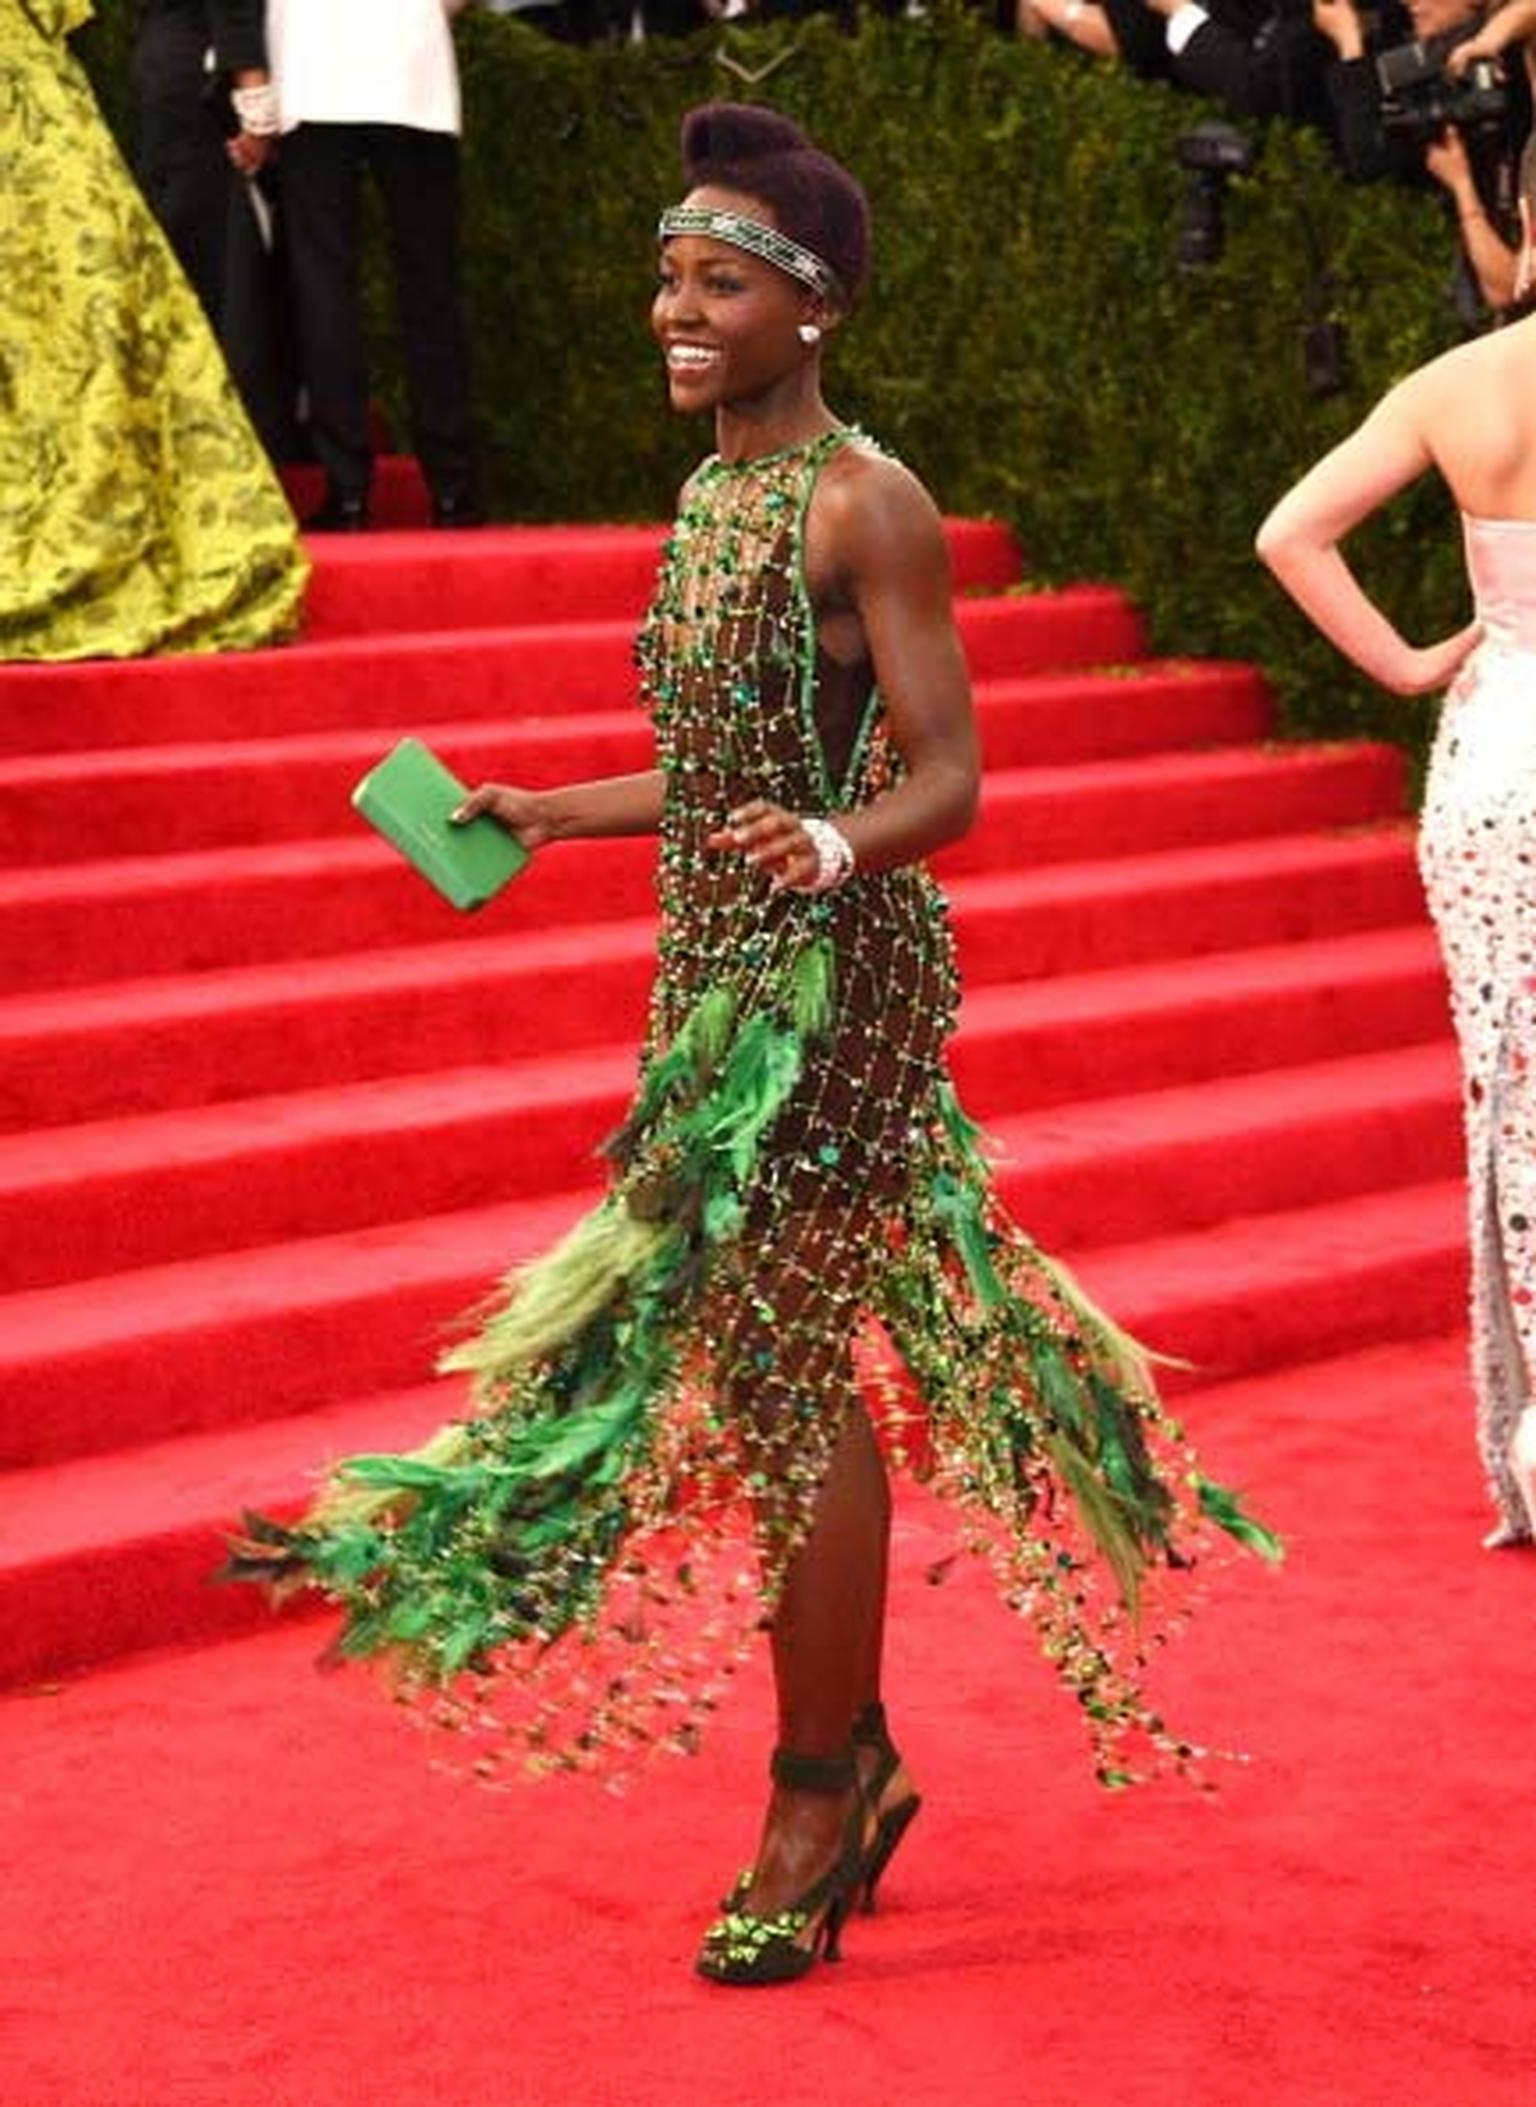 Lupita Nyong'o wore the most flamboyant outfit of the night courtesy of Prada and didn't hold back on her jewels either. She wore a vintage 1906 diamond headpiece, two vintage diamond bracelets, a parrot ring, diamond earrings and an emerald and diamond b